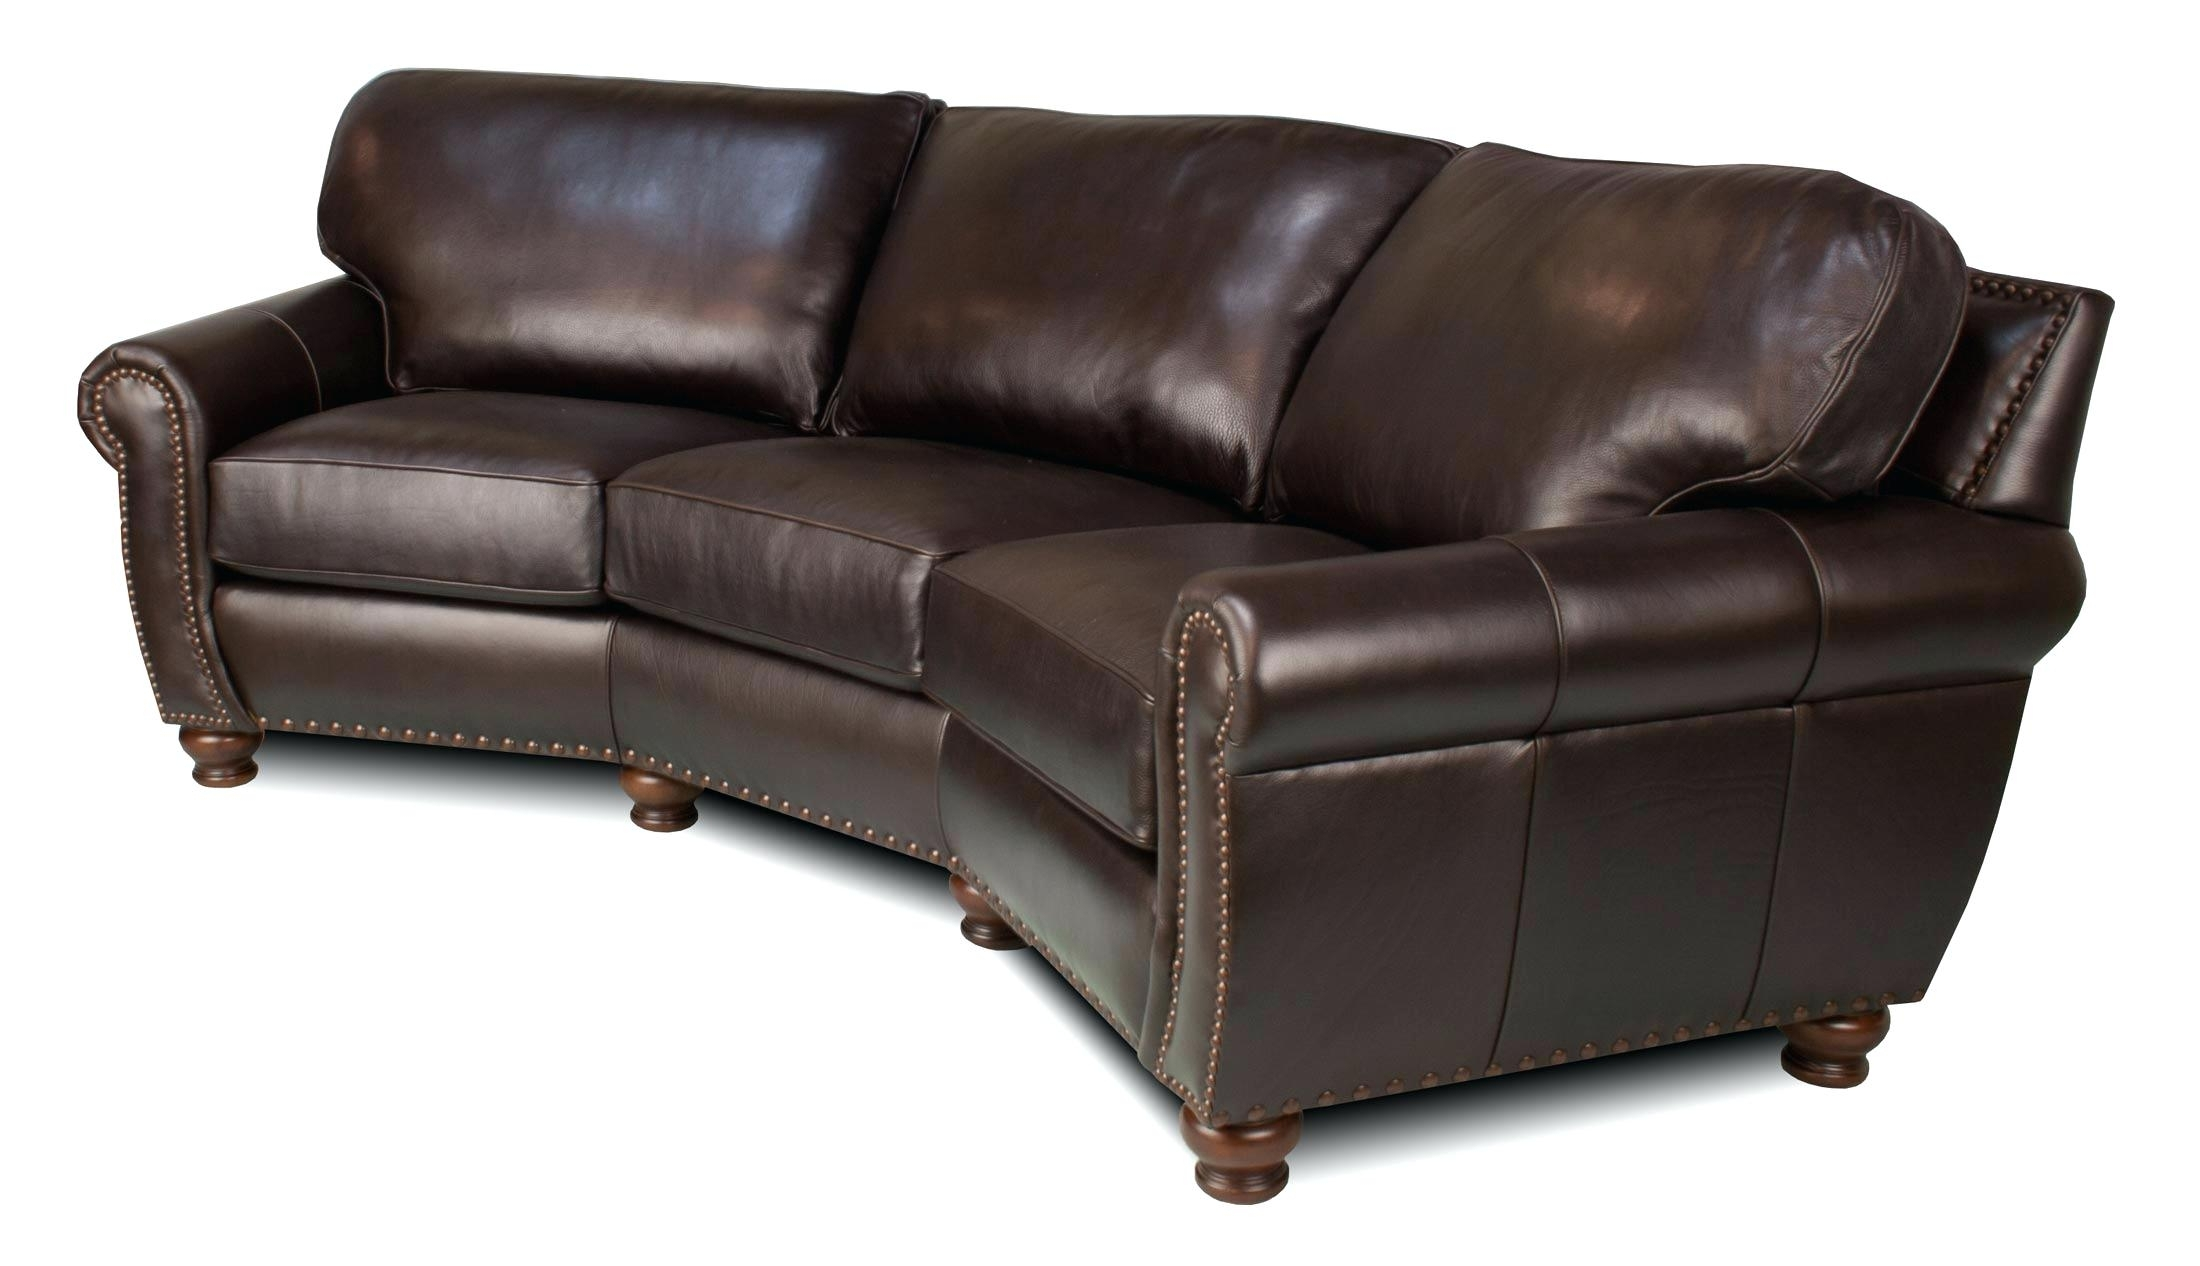 Classy Angled Chaise Sofa On Chaise Angled Chaise Sofa Thornton Intended For Angled Chaise Sofas (View 9 of 10)